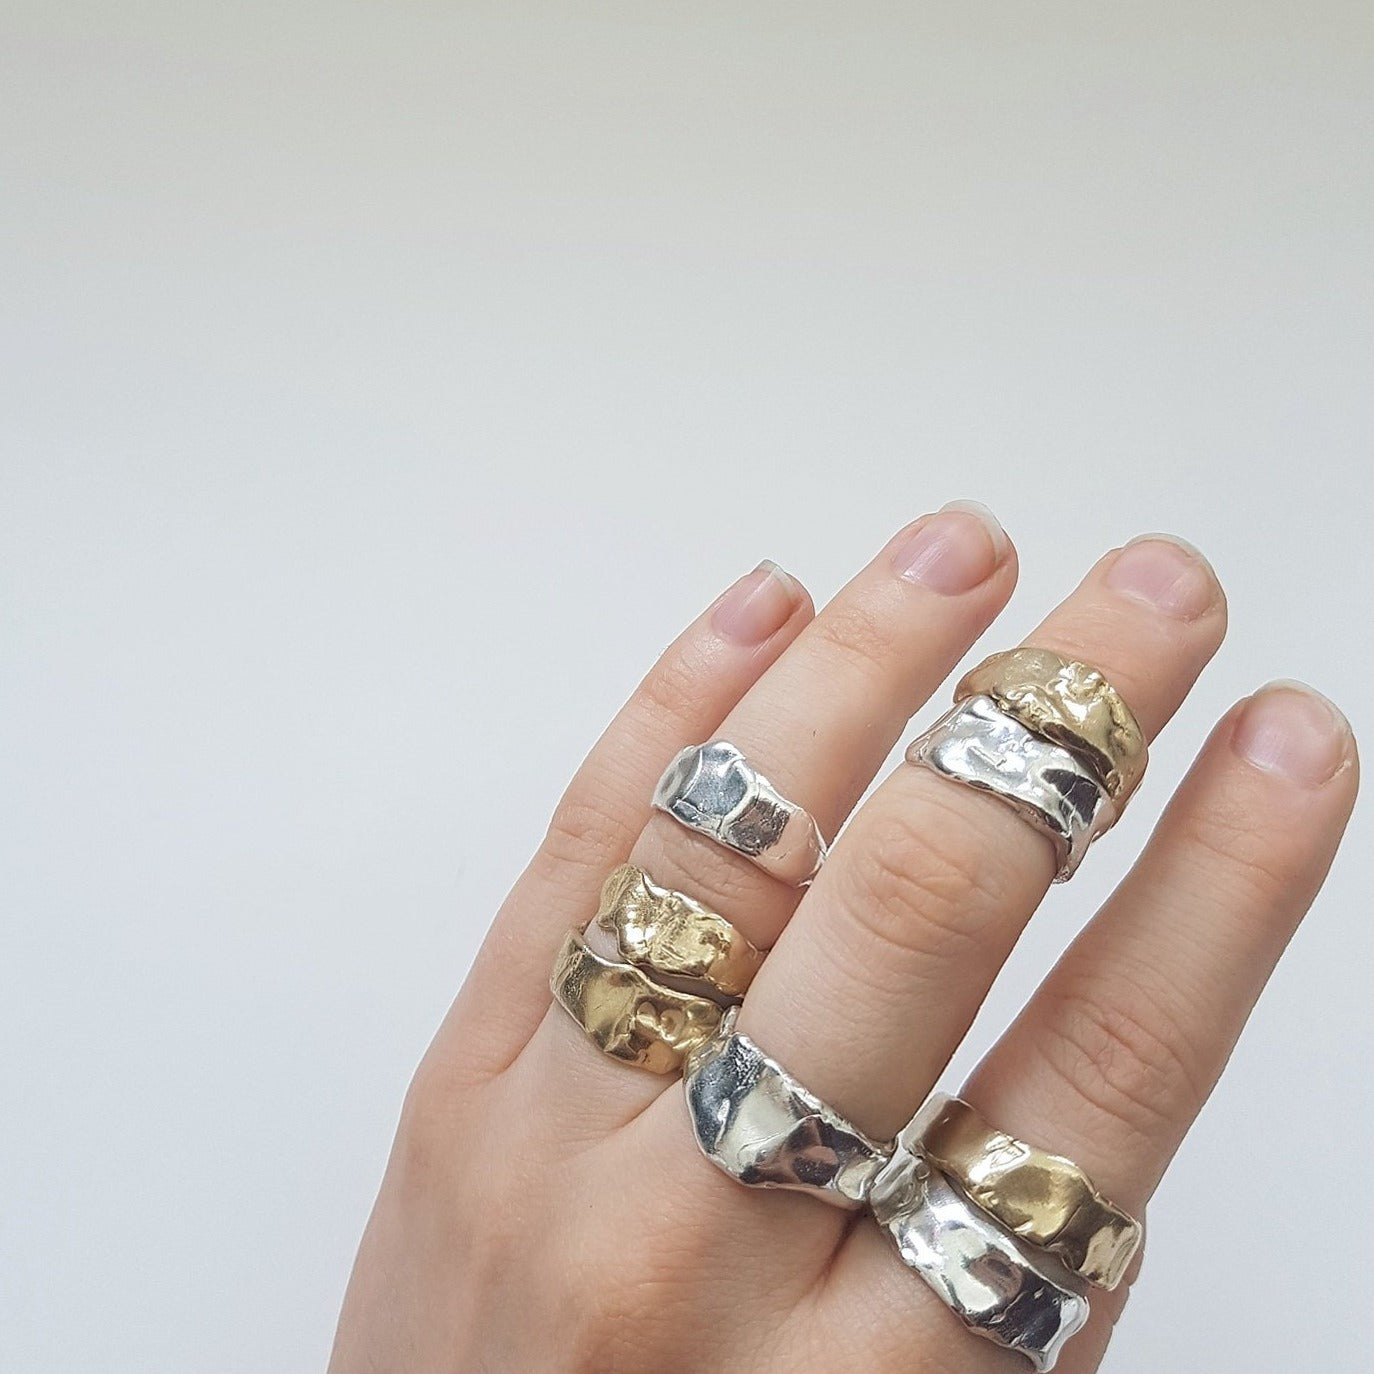 Melted Band Rings